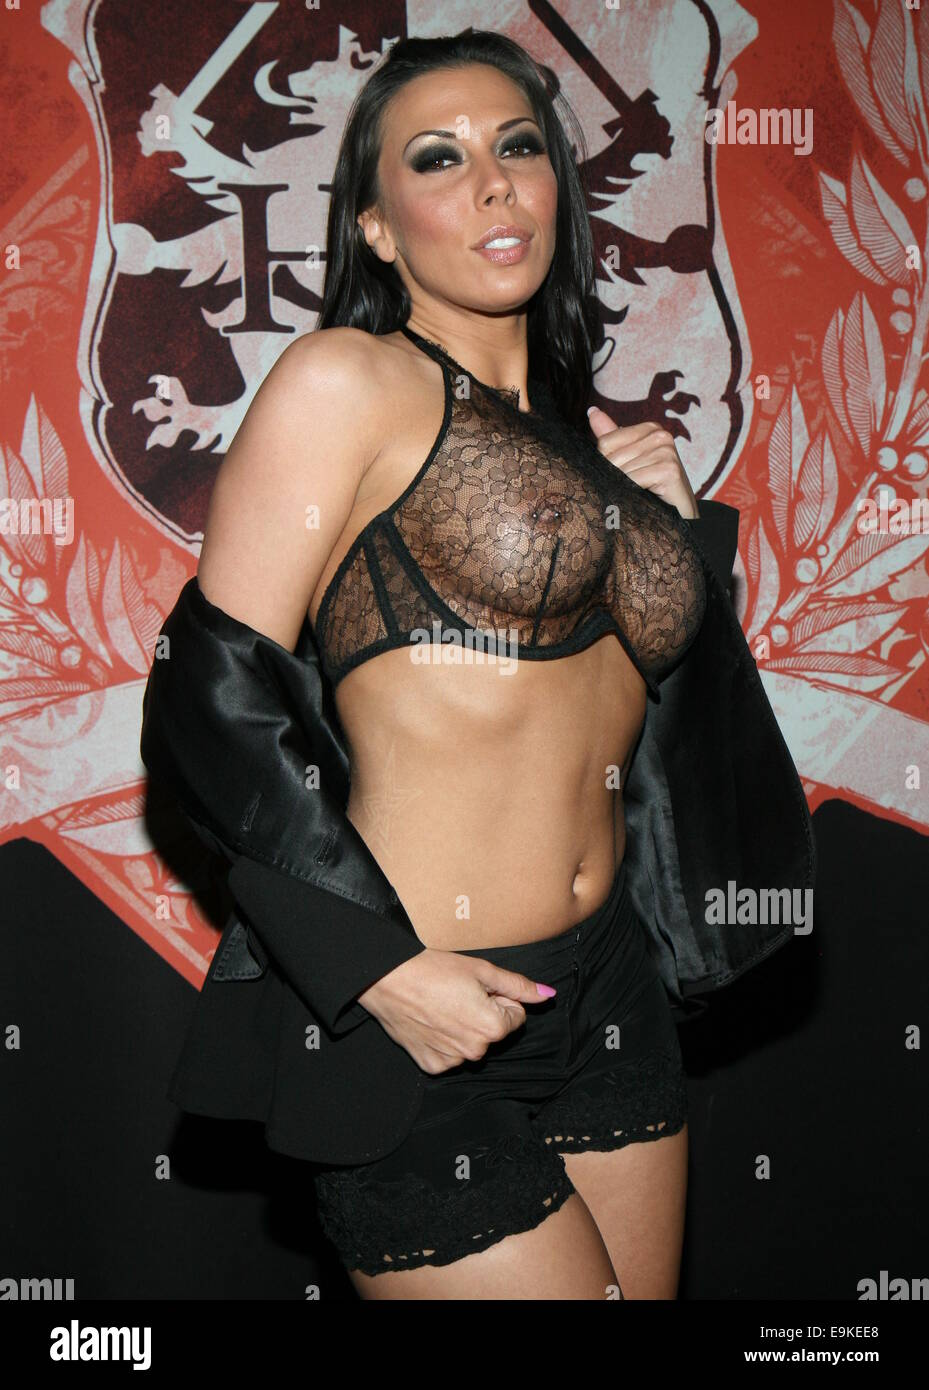 Rachel Starr Feature Dance Appearence At Headquarters Gentlemens Club Featuring Rachel Starr Where New York United States When